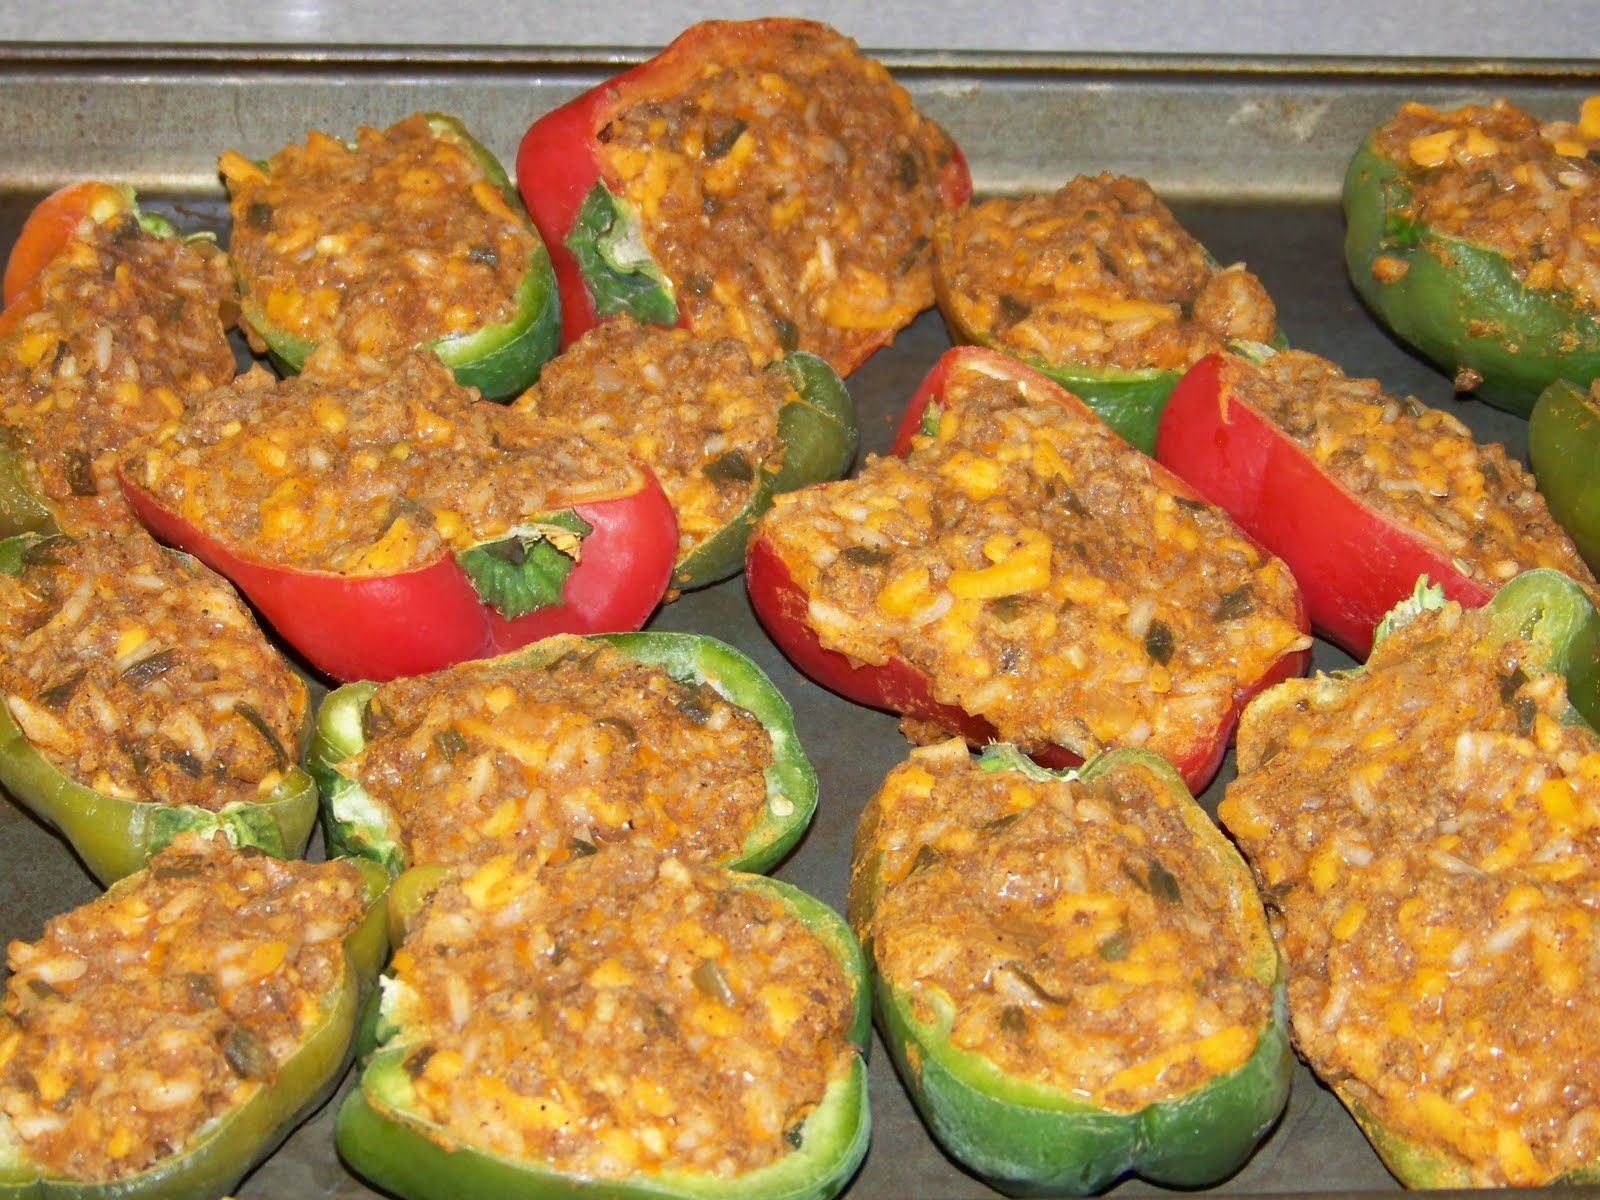 Hickery Holler Farm: Freezing Stuffed Peppers